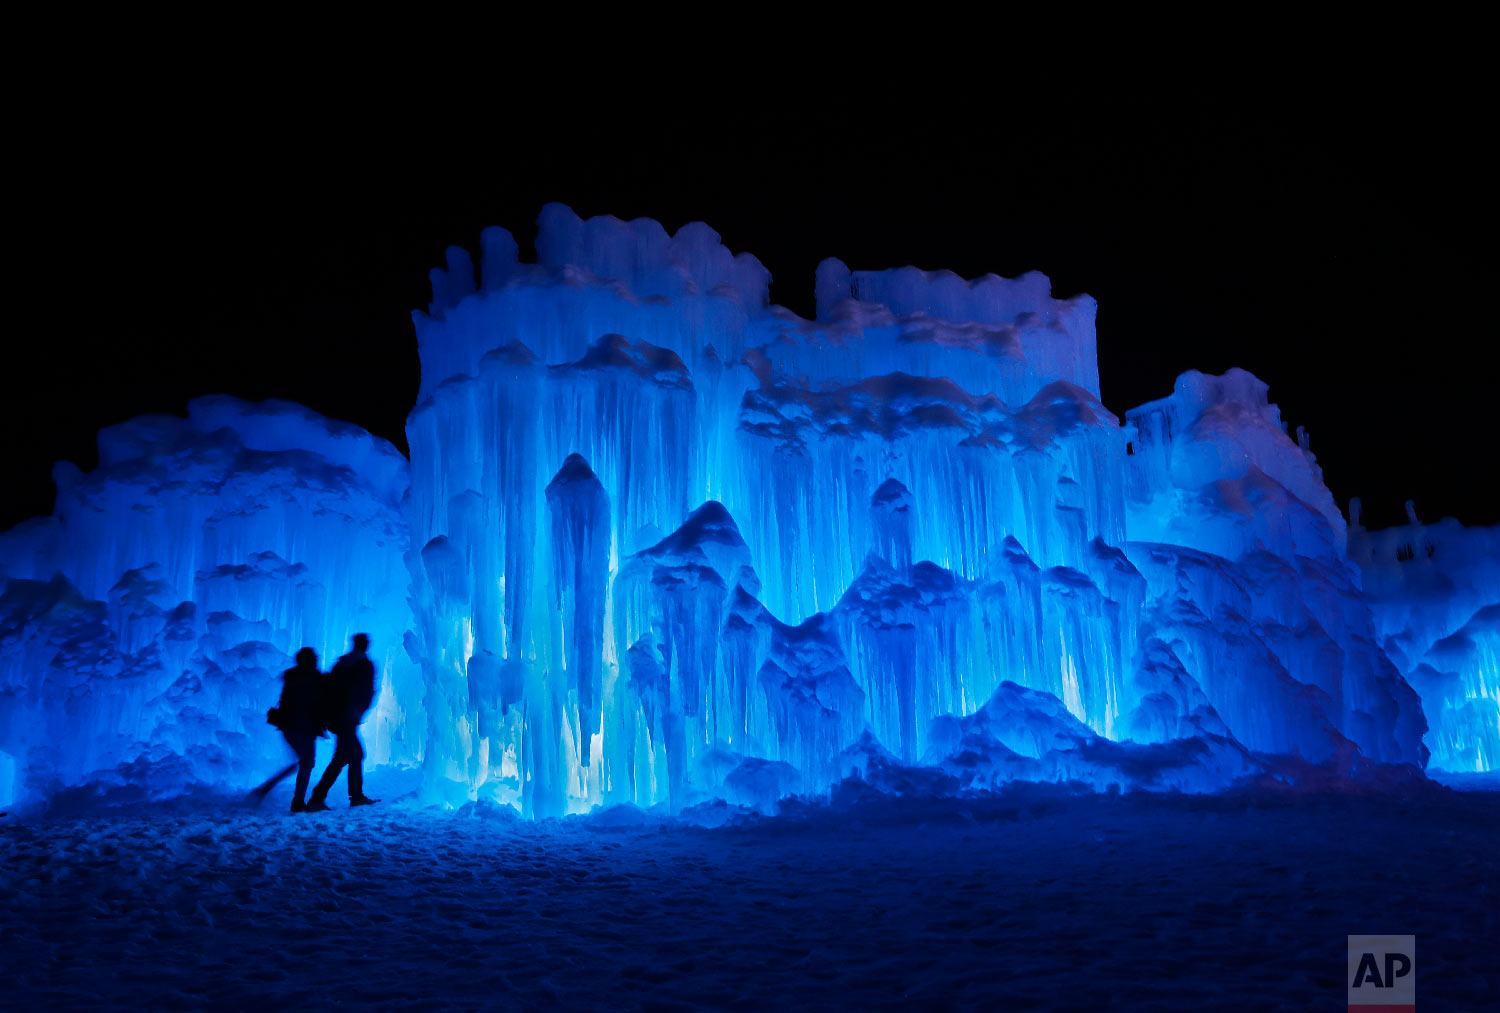 In this Saturday, Jan. 26, 2019, photo, a couple heads towards an entrance to a cavern at Ice Castles in North Woodstock, N.H.  (AP Photo/Robert F. Bukaty)